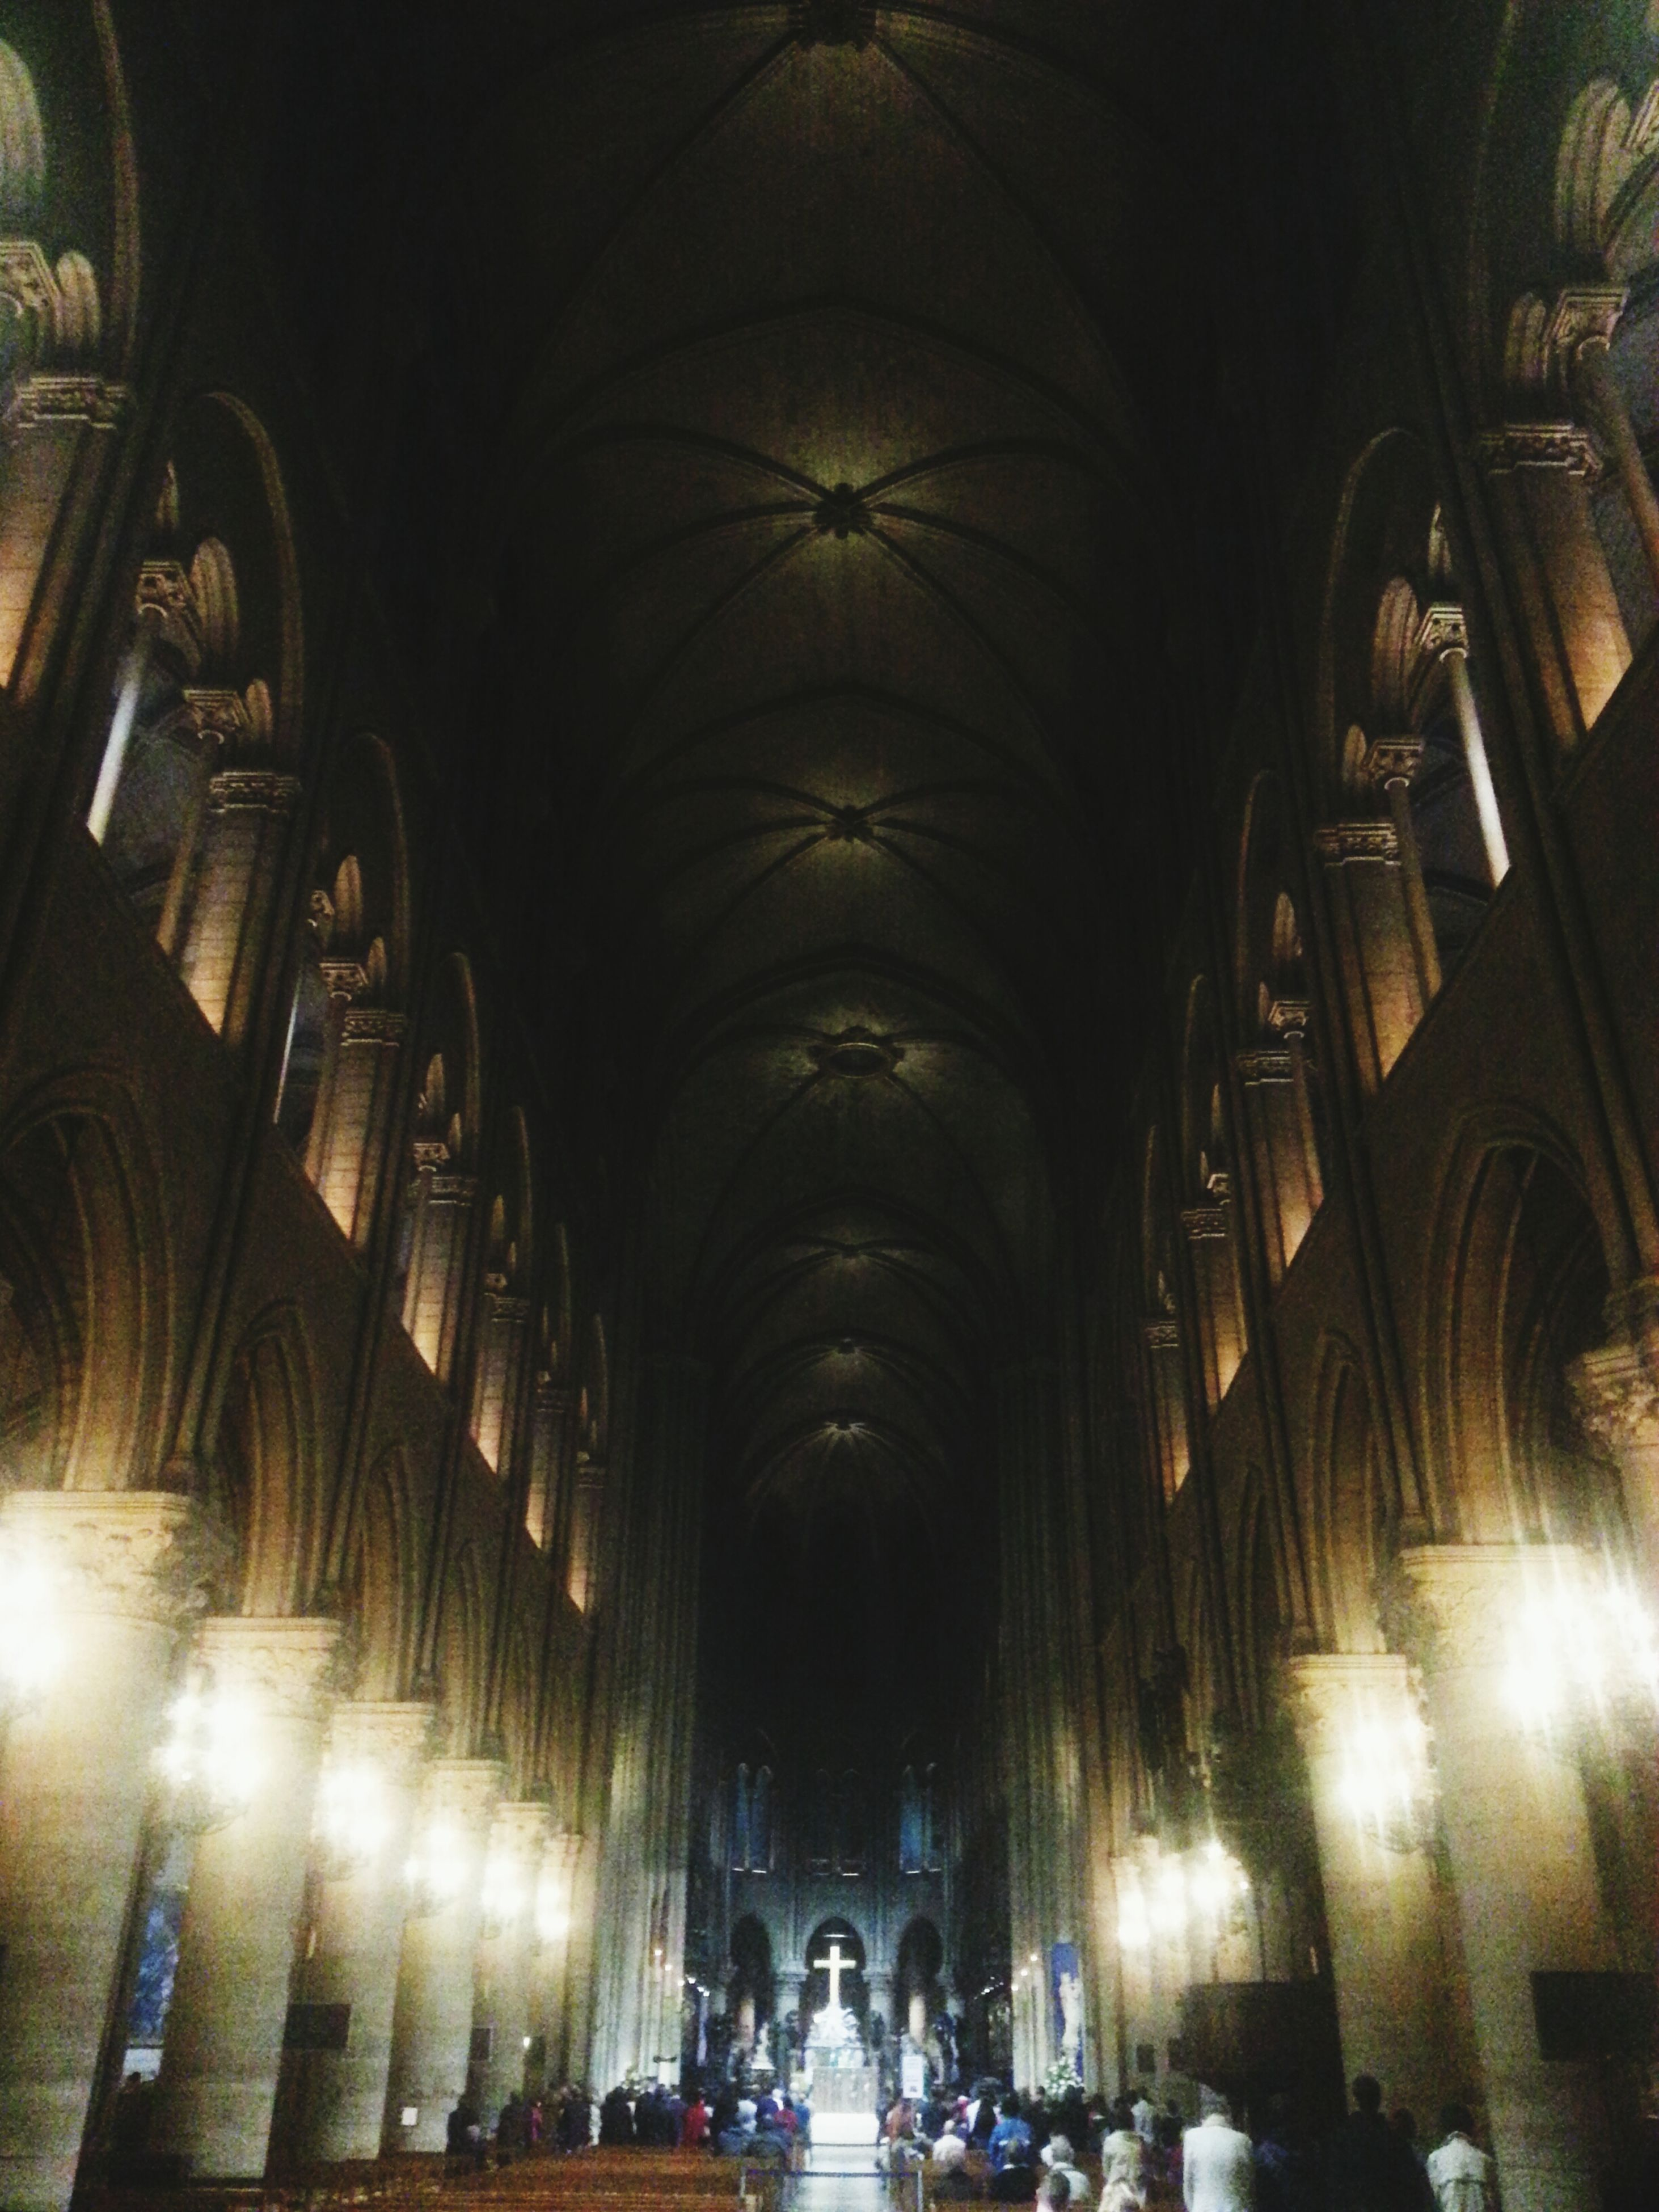 indoors, arch, ceiling, architecture, illuminated, built structure, men, large group of people, interior, lifestyles, travel, person, place of worship, history, famous place, religion, architectural column, leisure activity, tourism